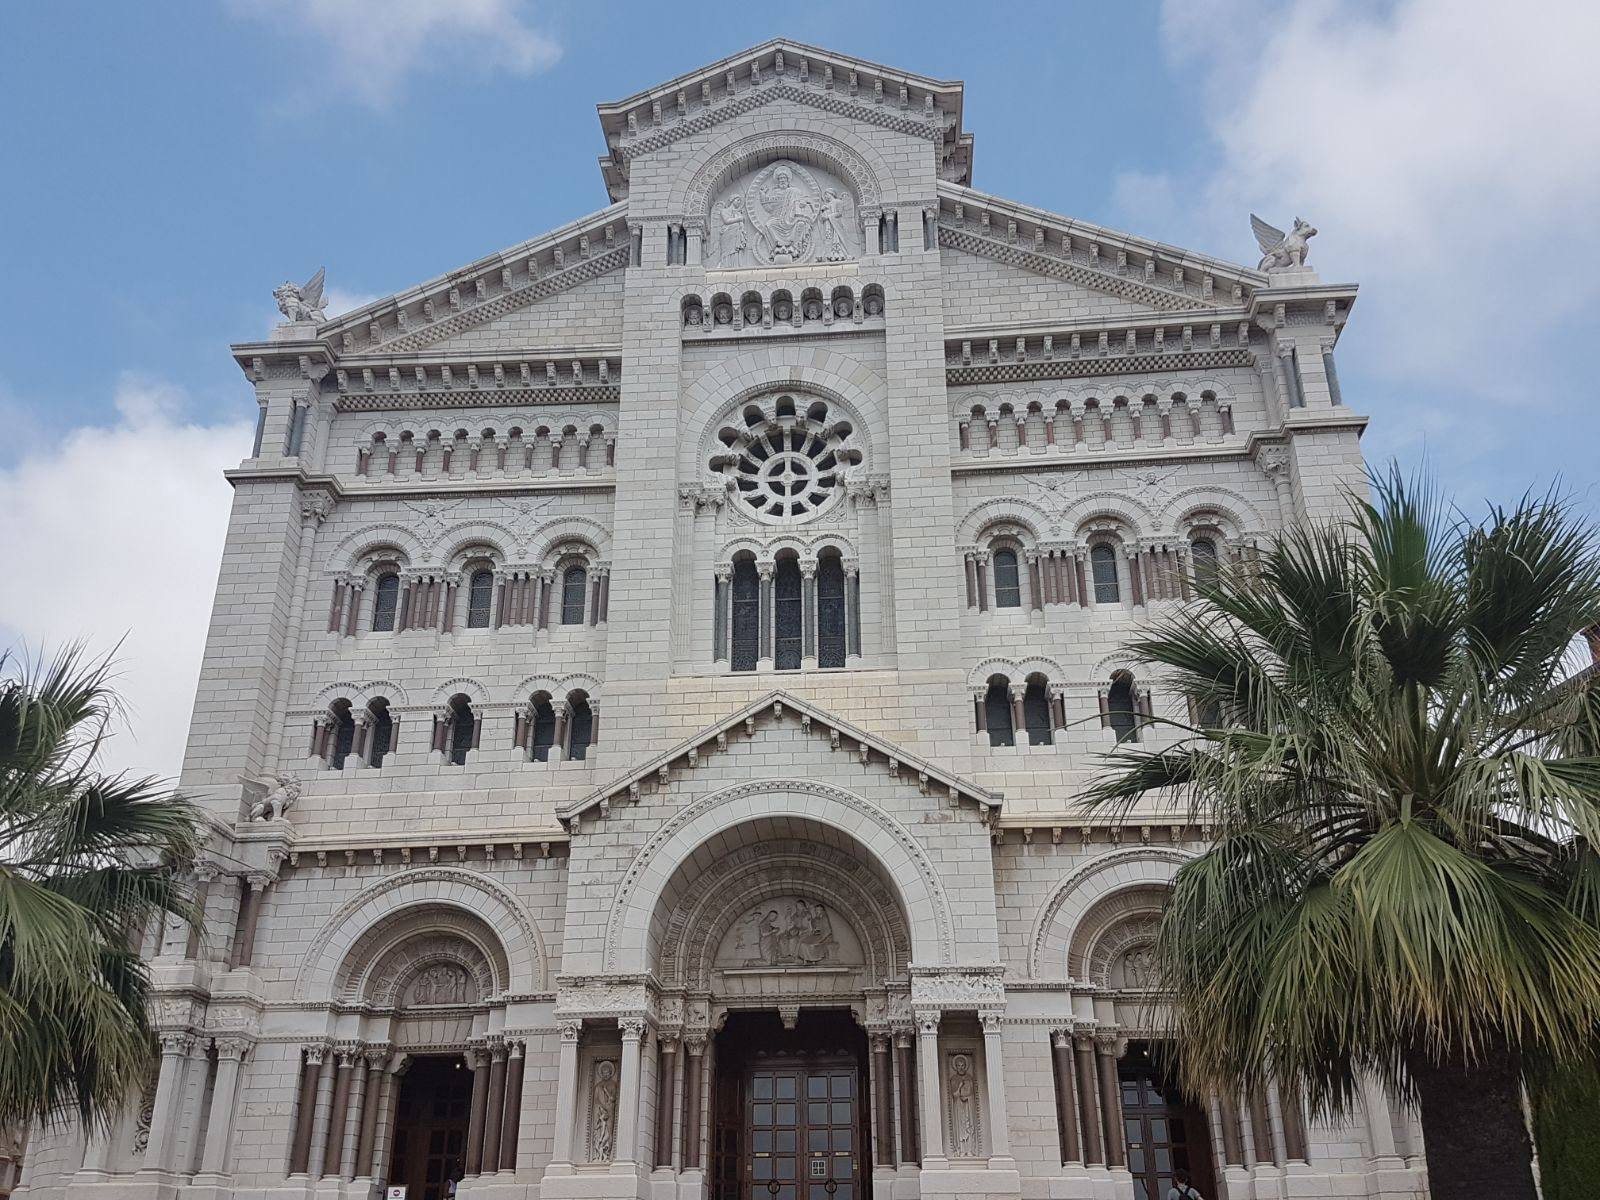 The Cathedral in Monaco